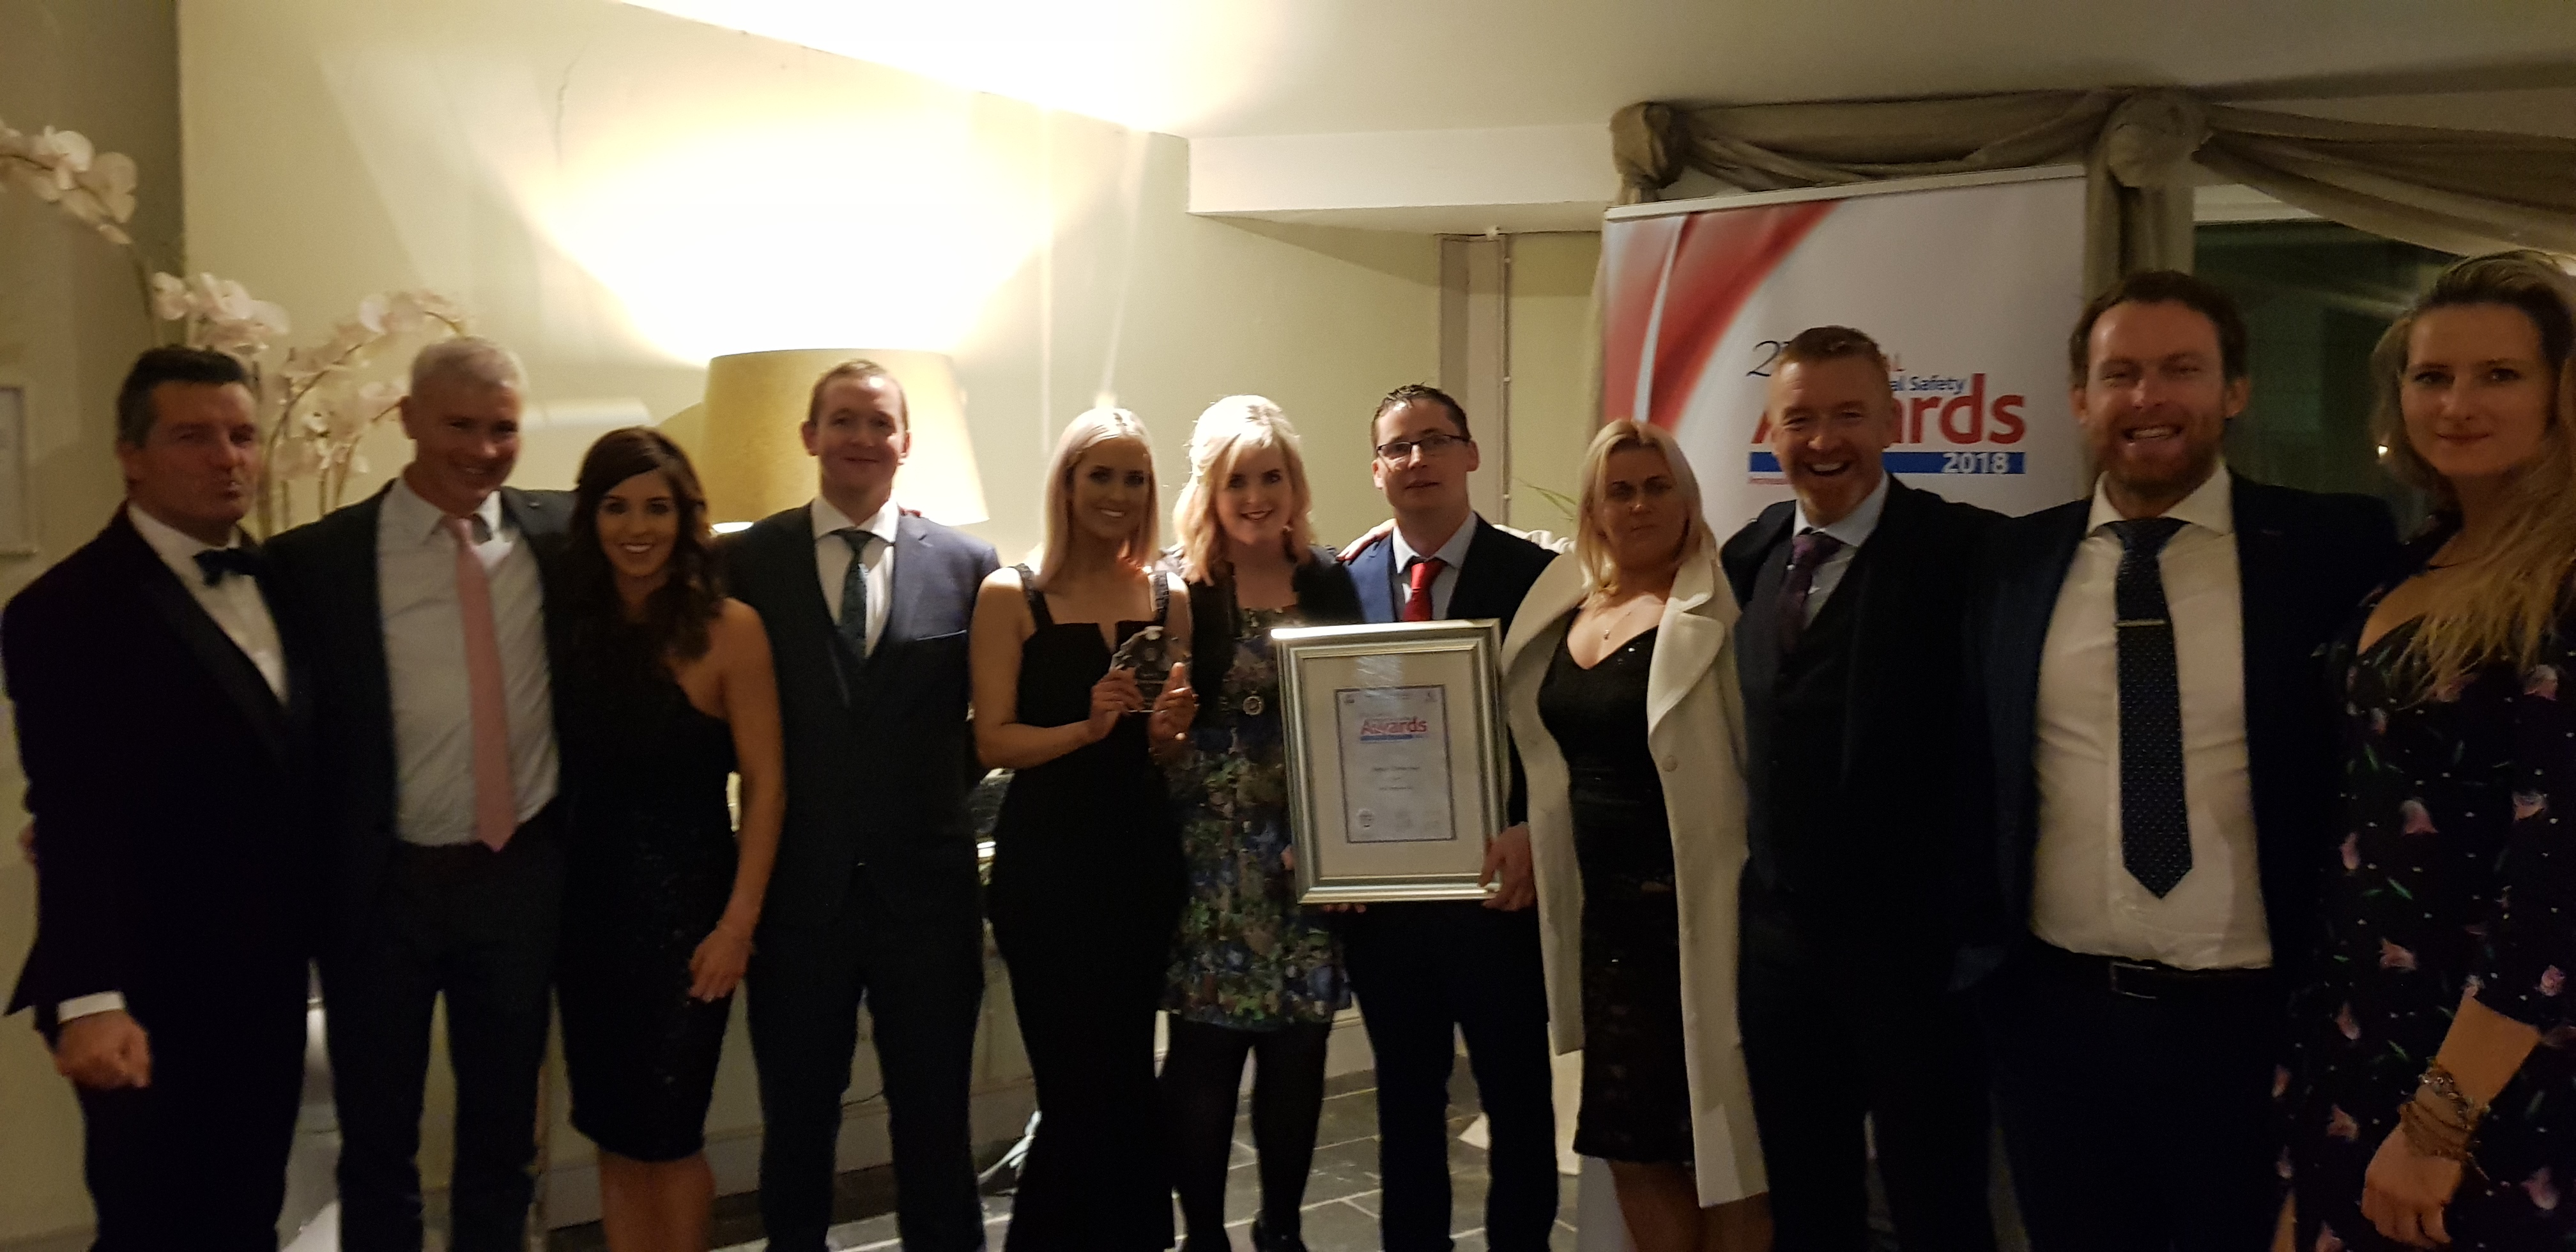 Higher Distinction Award at 27th Annual All Ireland Occupational Safety Awards